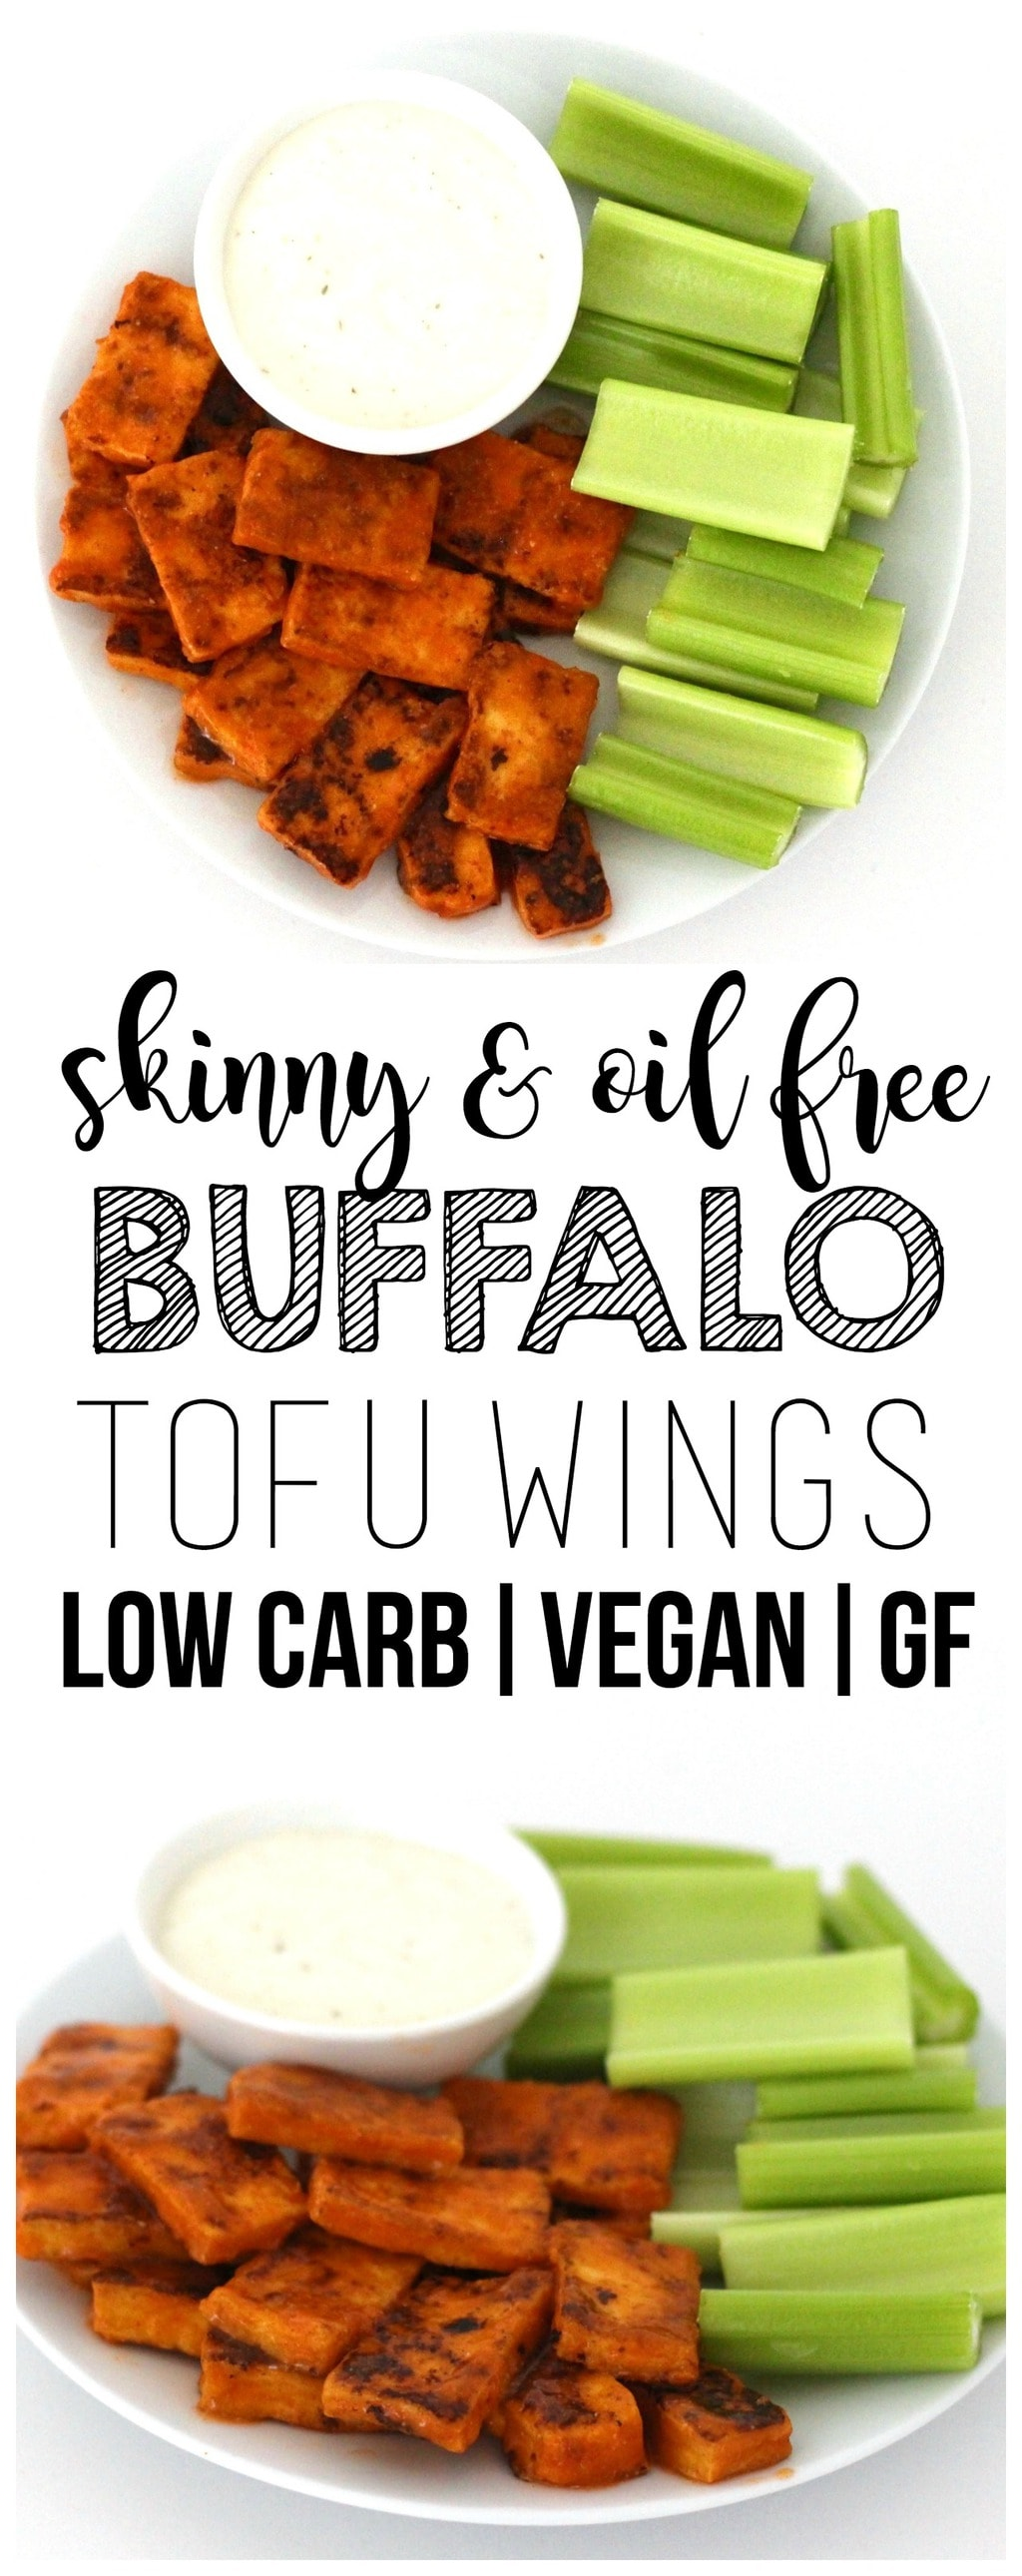 These skinny & oil-free Buffalo Tofu Wings are so delicious! The perfect party appetizer or Super Bowl snack. Low-fat, low-carb, keto, low-calorie, vegan, and gluten-free!